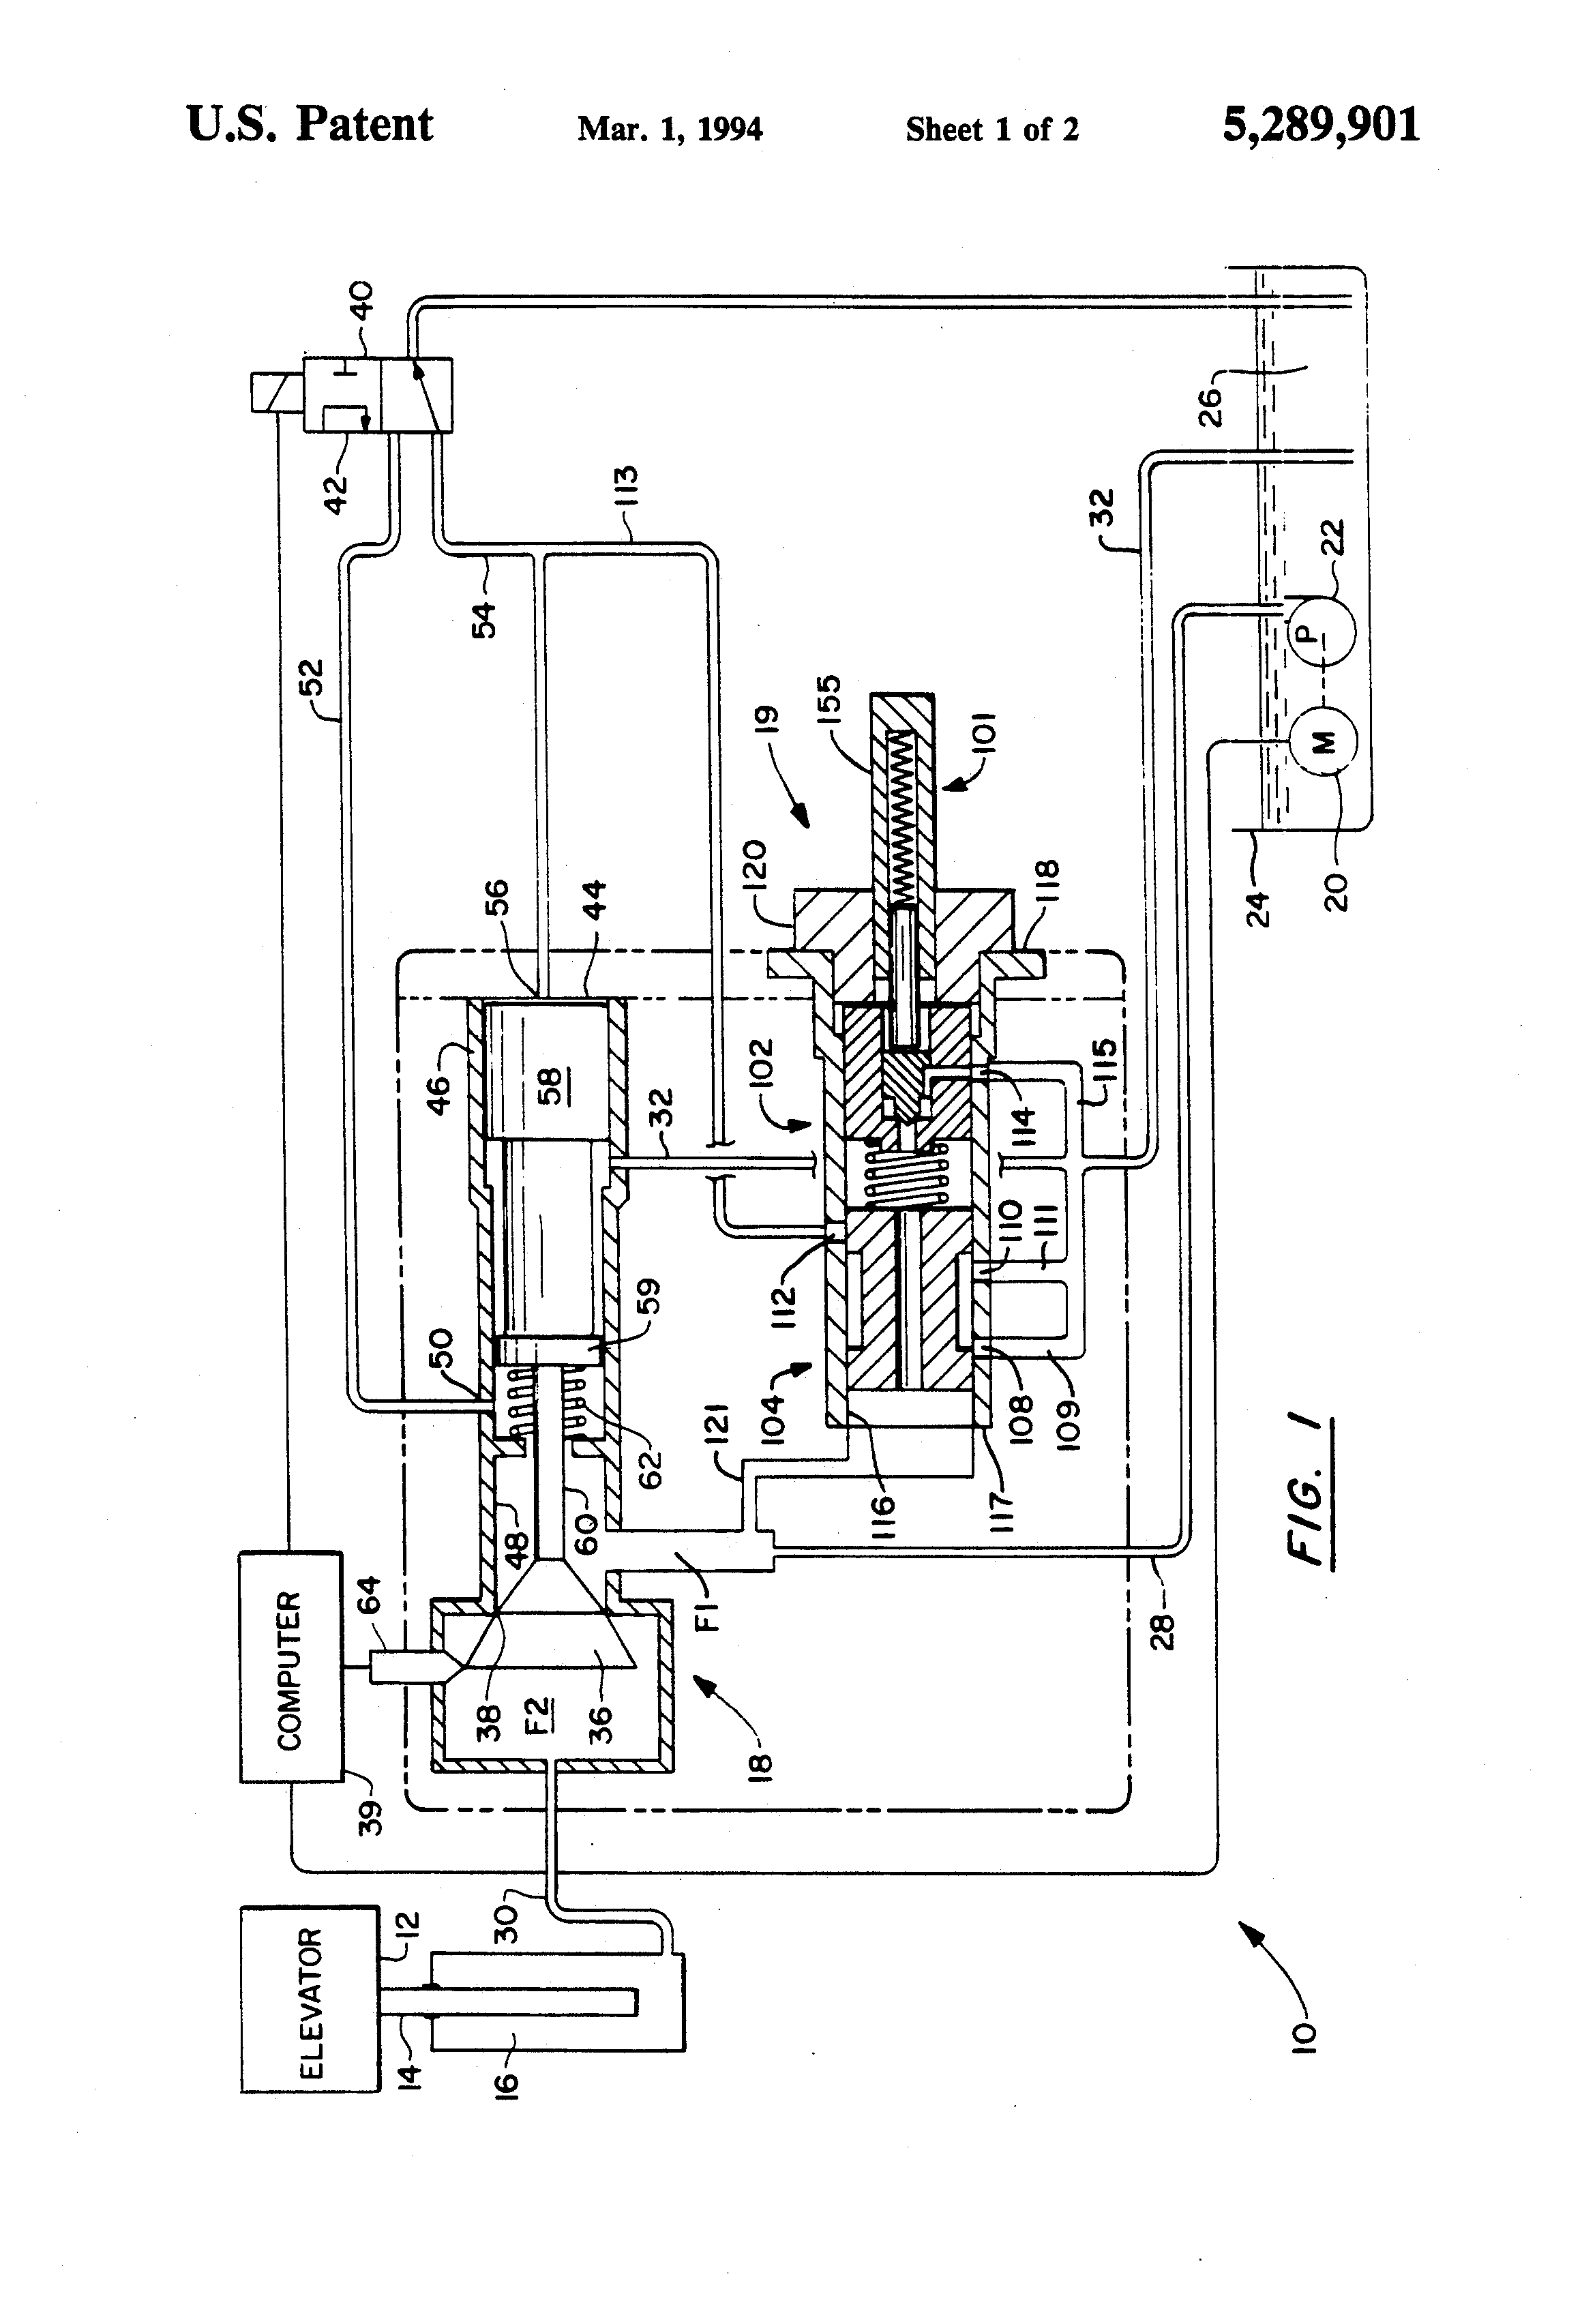 Hydraulic Elevator Wiring Diagramsimplicity Electrical Roper Rex5634kq2 Dryer 4 Prong Diagram Elevators Schematics Traction